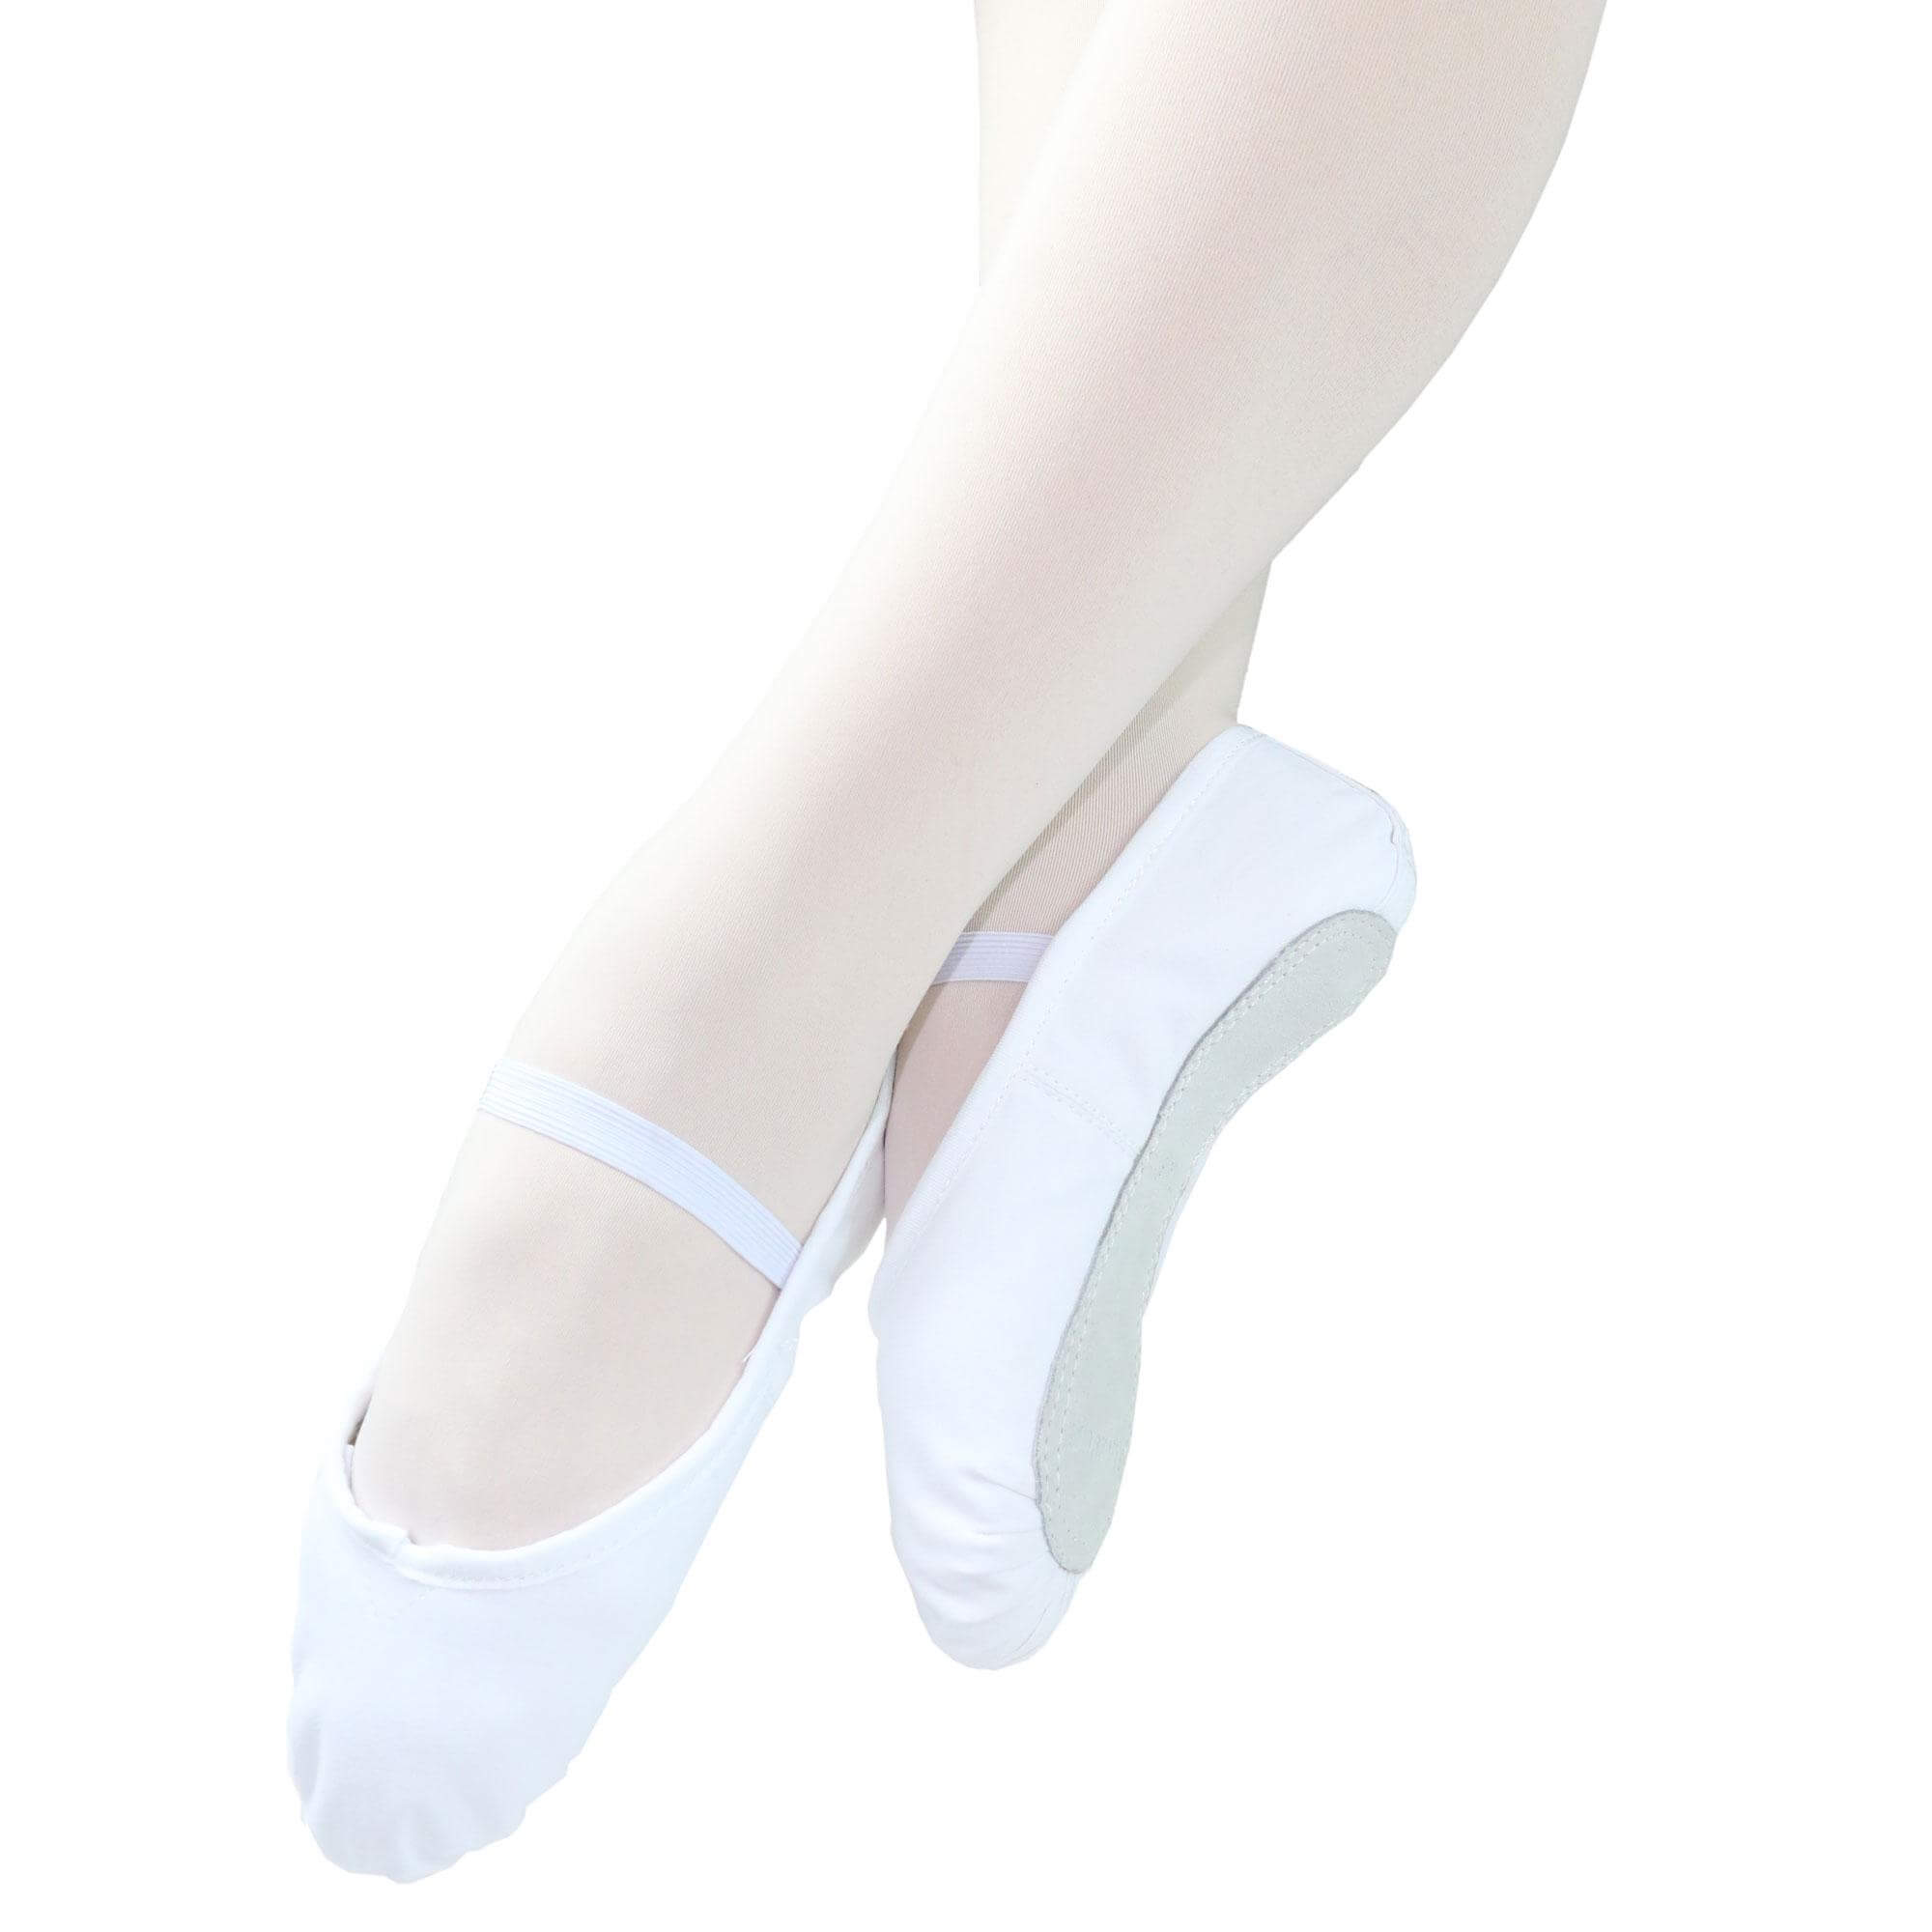 Danzcue Adult Full Sole Canvas Ballet Slipper